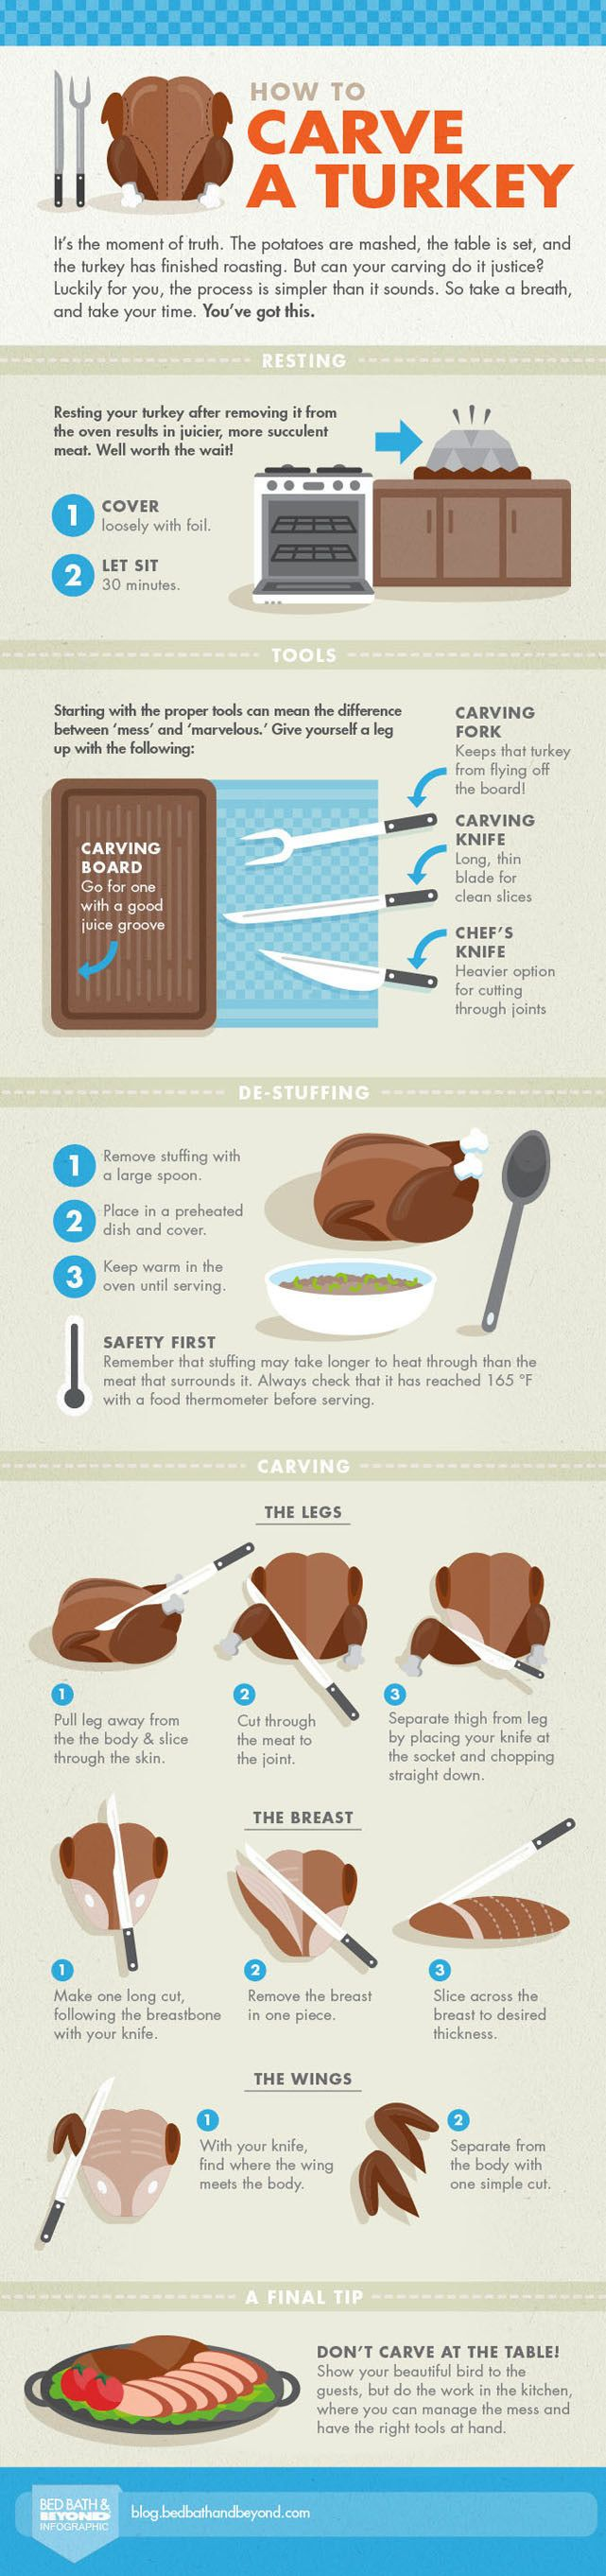 How To Carve A Turkey #Infographic